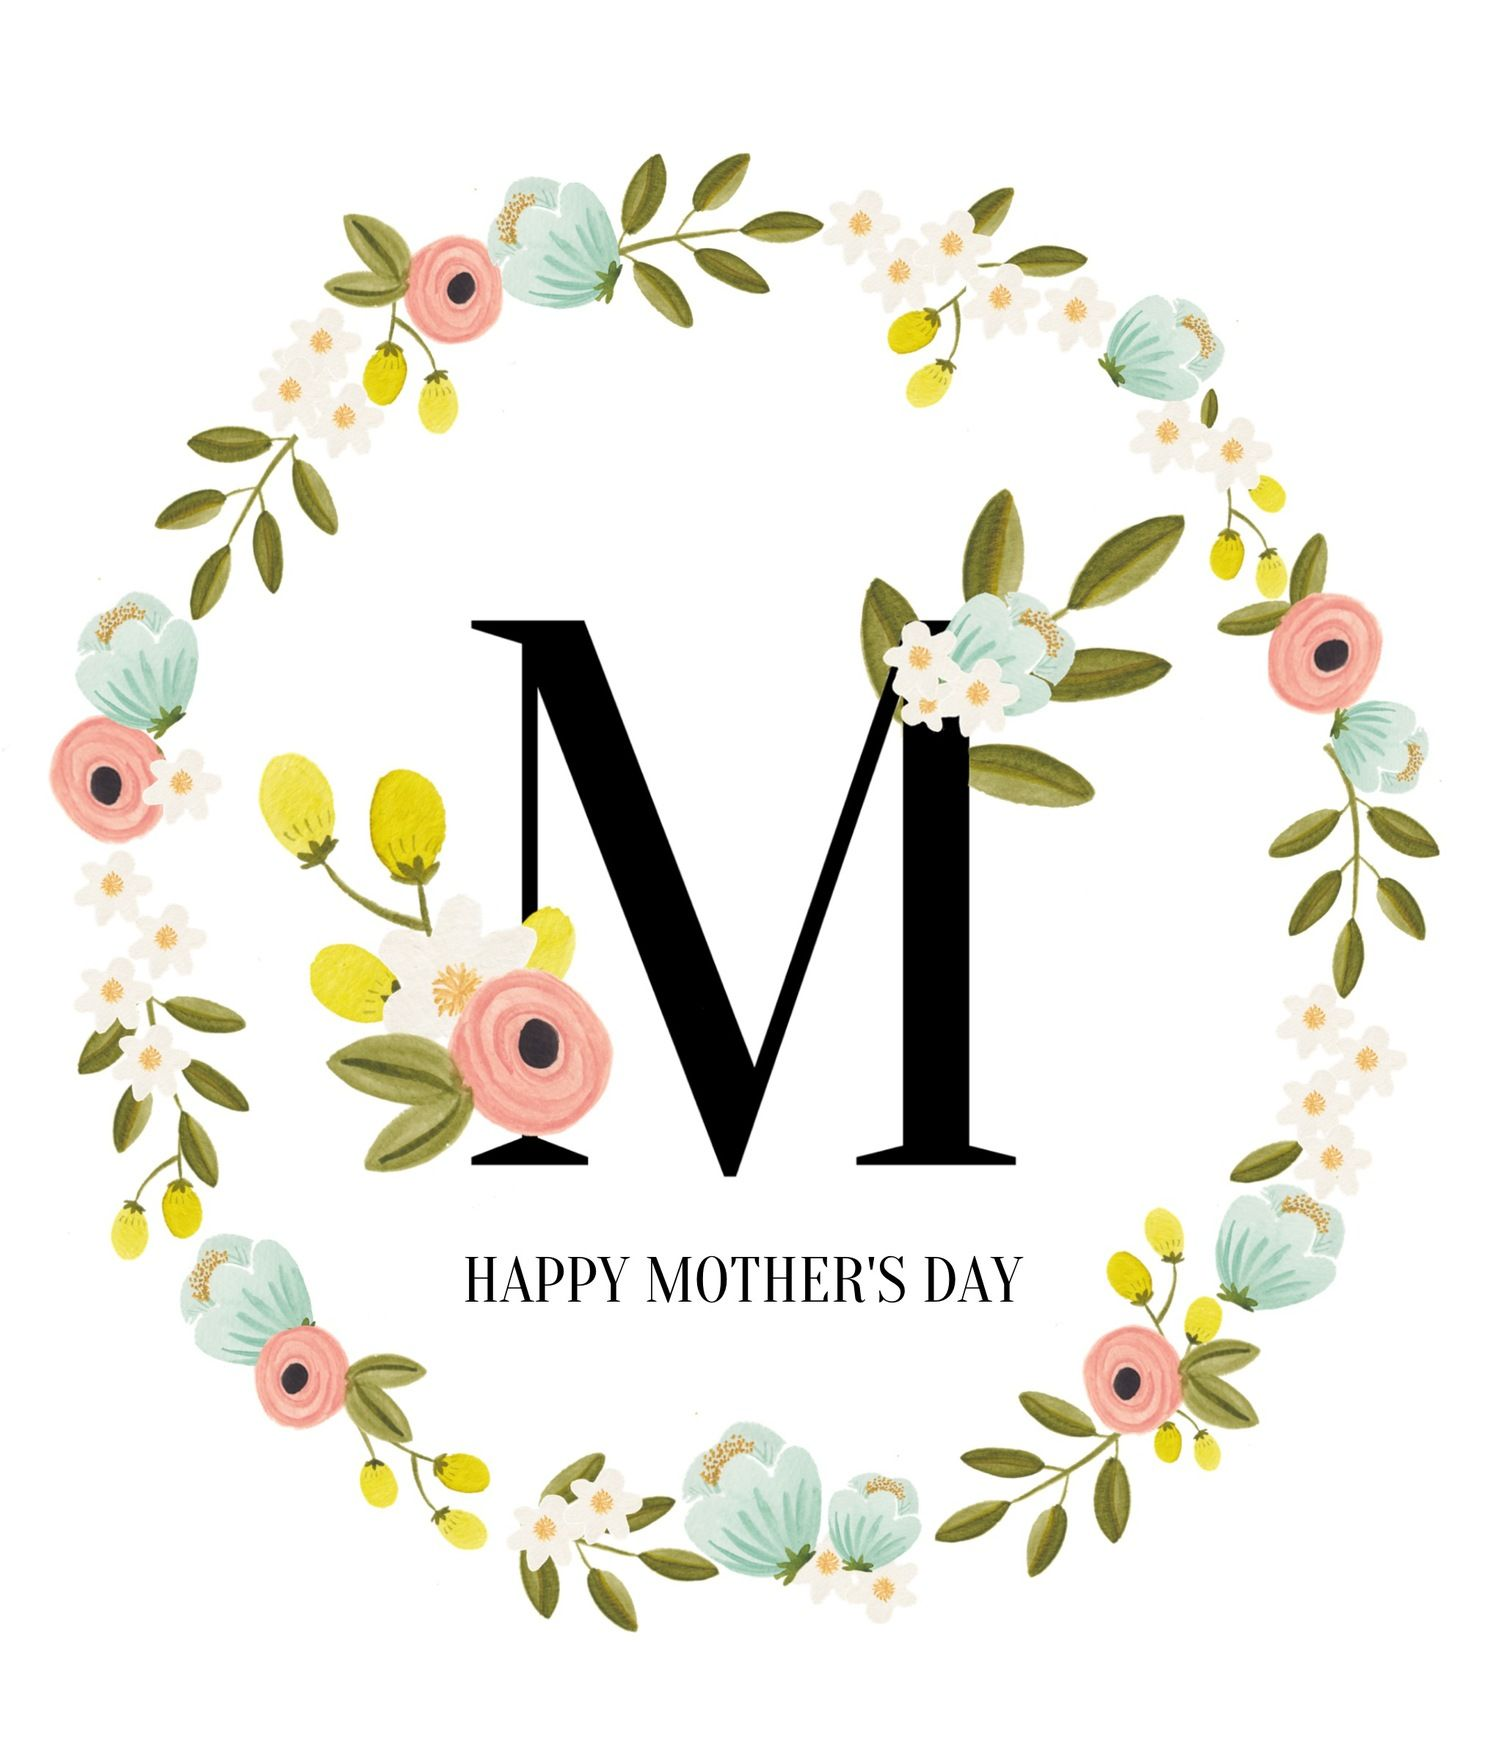 It is a graphic of Invaluable Happy Mother's Day Printable